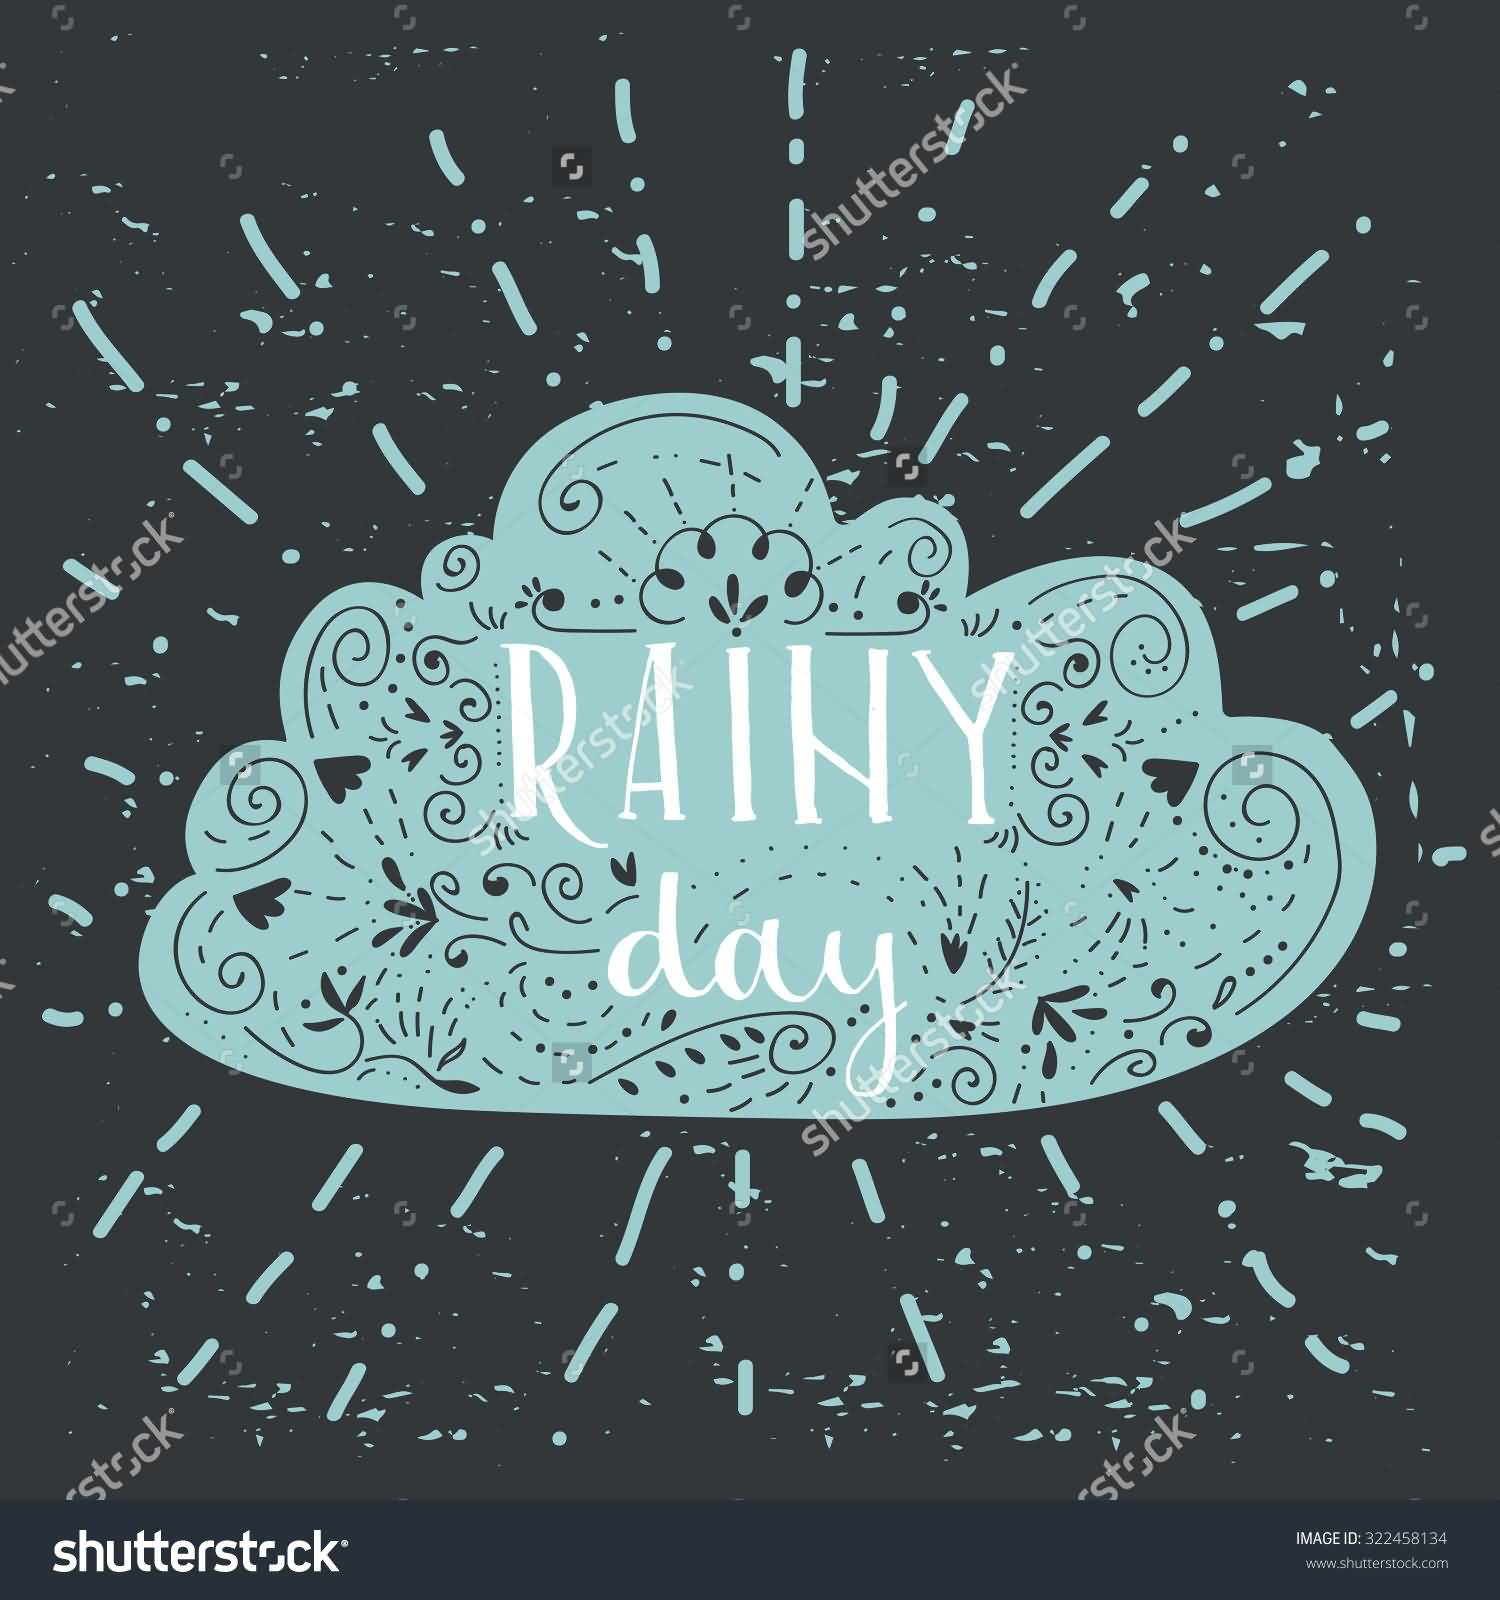 Happy Quotes About Rainy Days: 31 Most Beautiful Rainy Day Wish Pictures And Photos